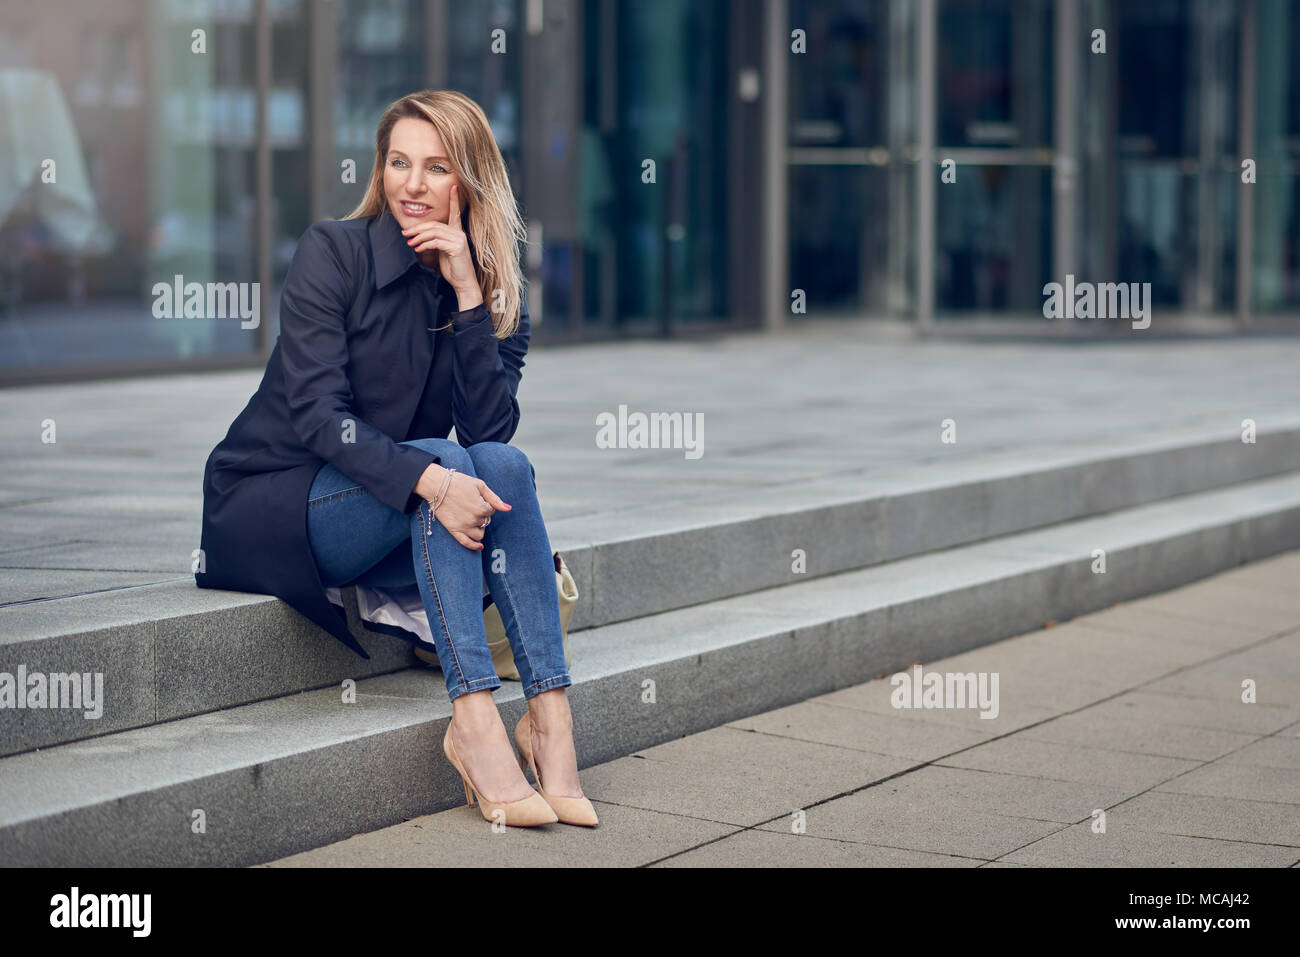 Attractive stylish woman in high heels and an overcoat sitting on urban steps looking thoughtfully to the side with her chin on her hand - Stock Image